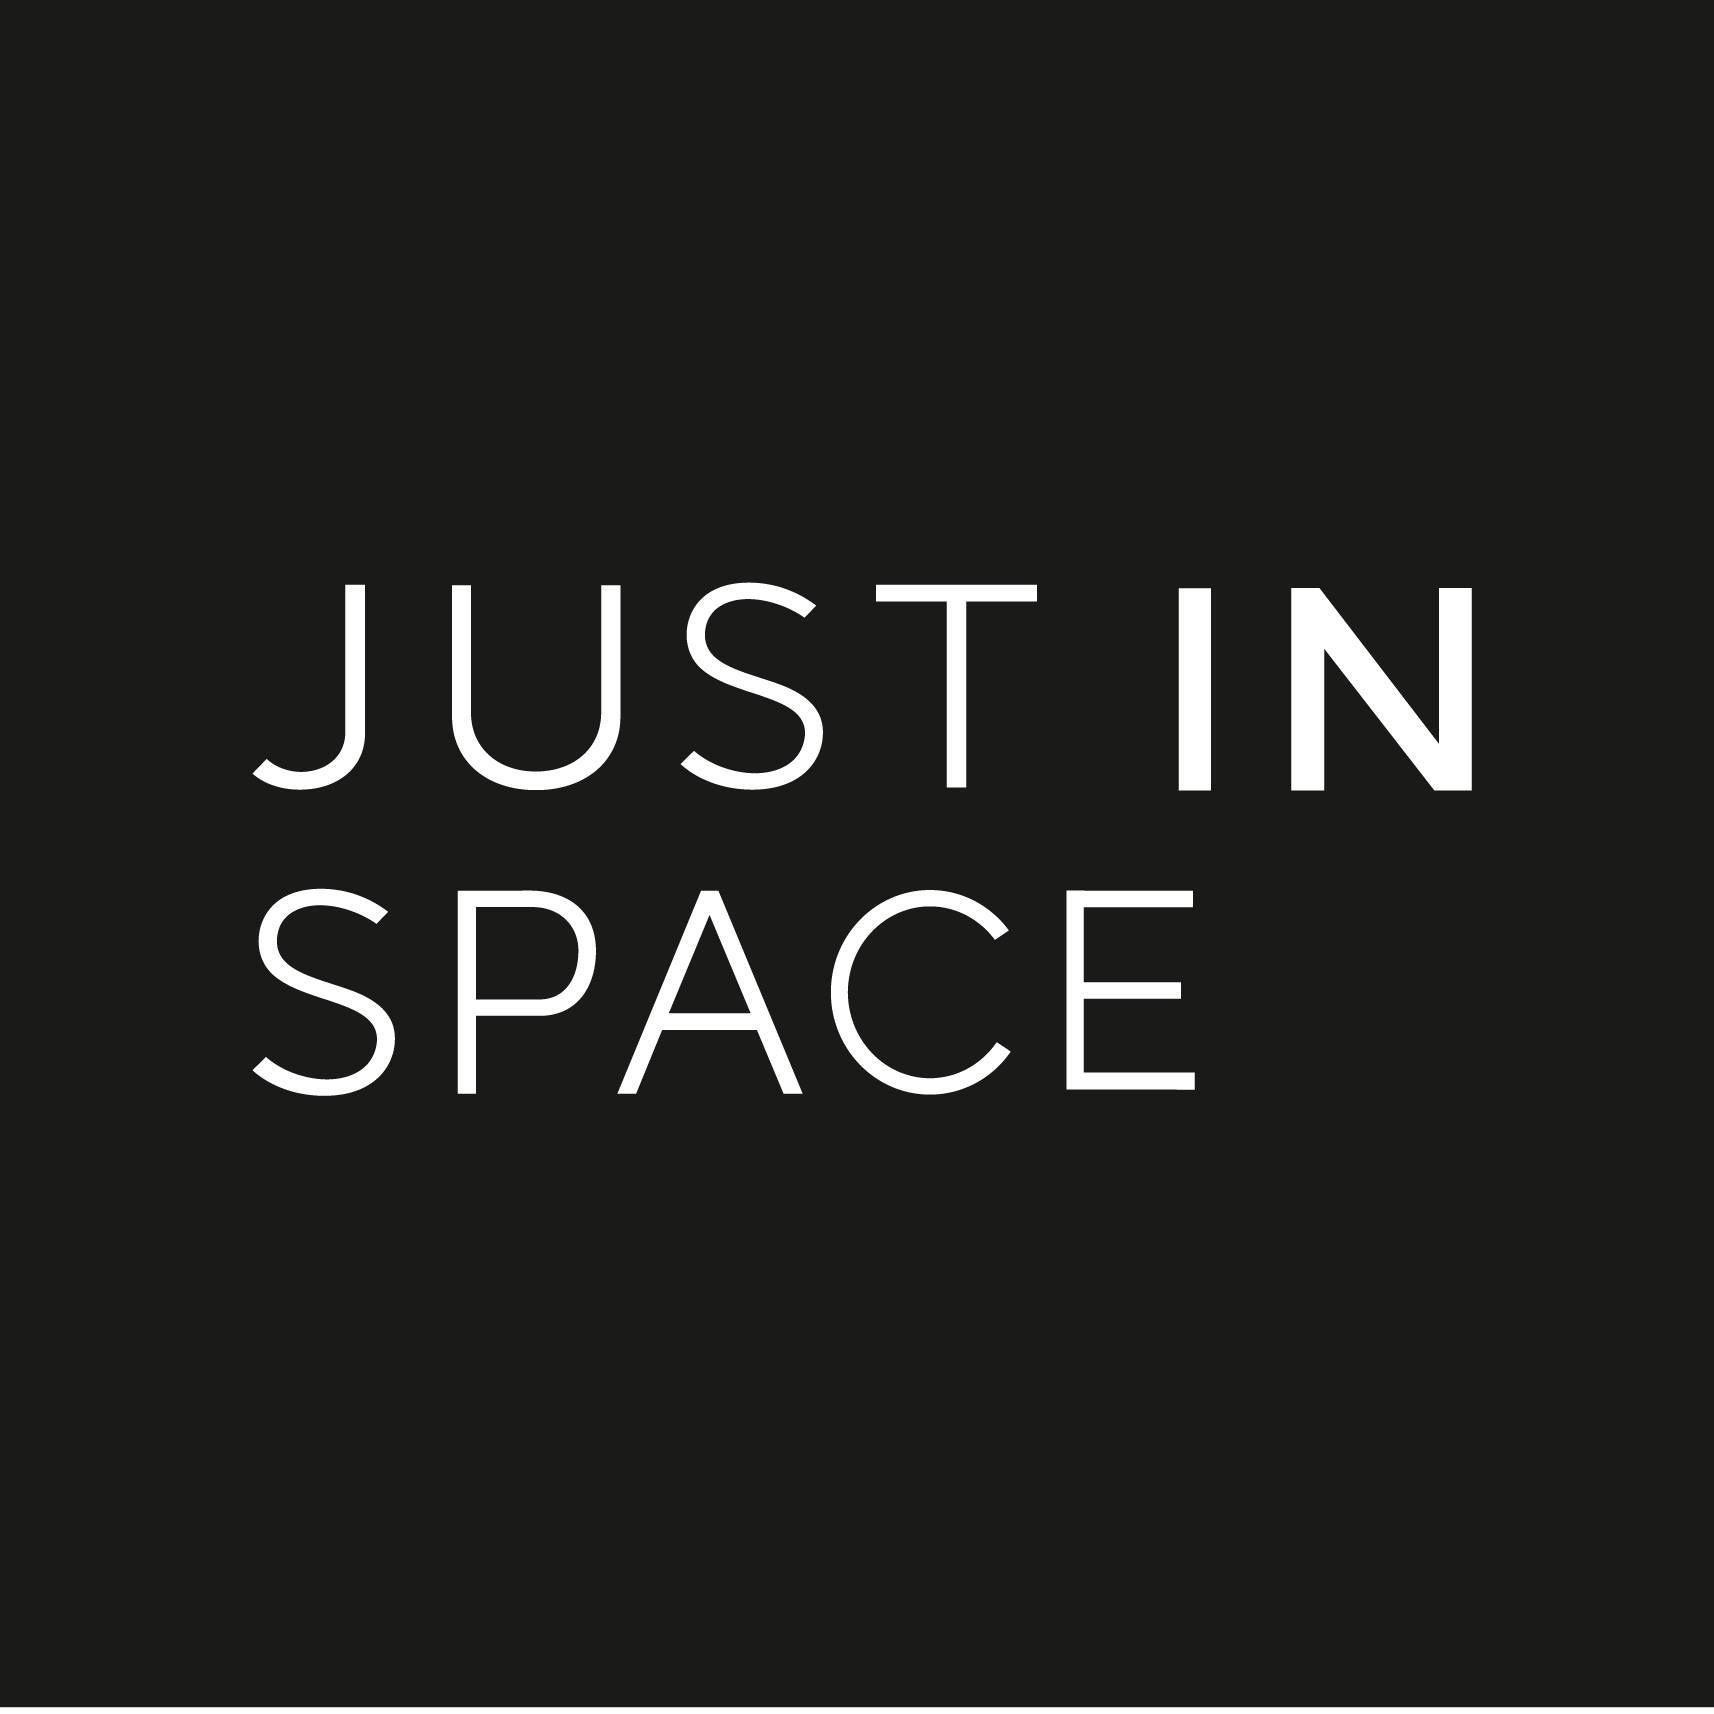 JUST IN SPACE